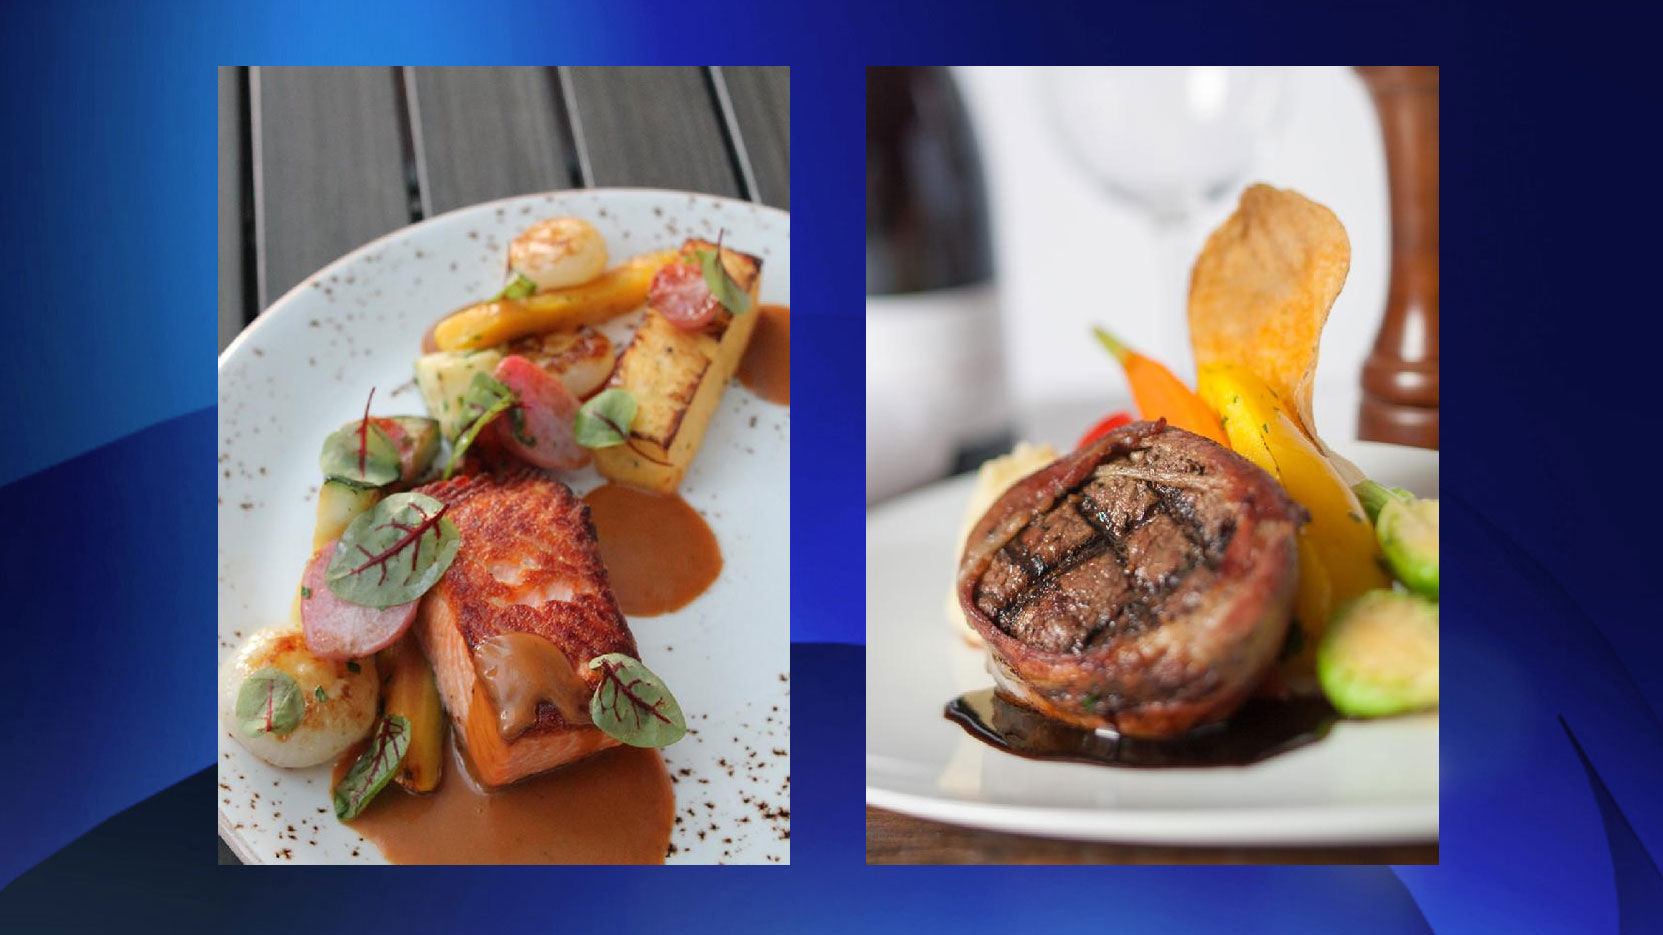 (Left to right): Salmon dish at Soco, and bacon-wrapped beef tenderloin at Quinn's, are some of the dishes being offered at Winterlicious 2016. CITY OF TORONTO.